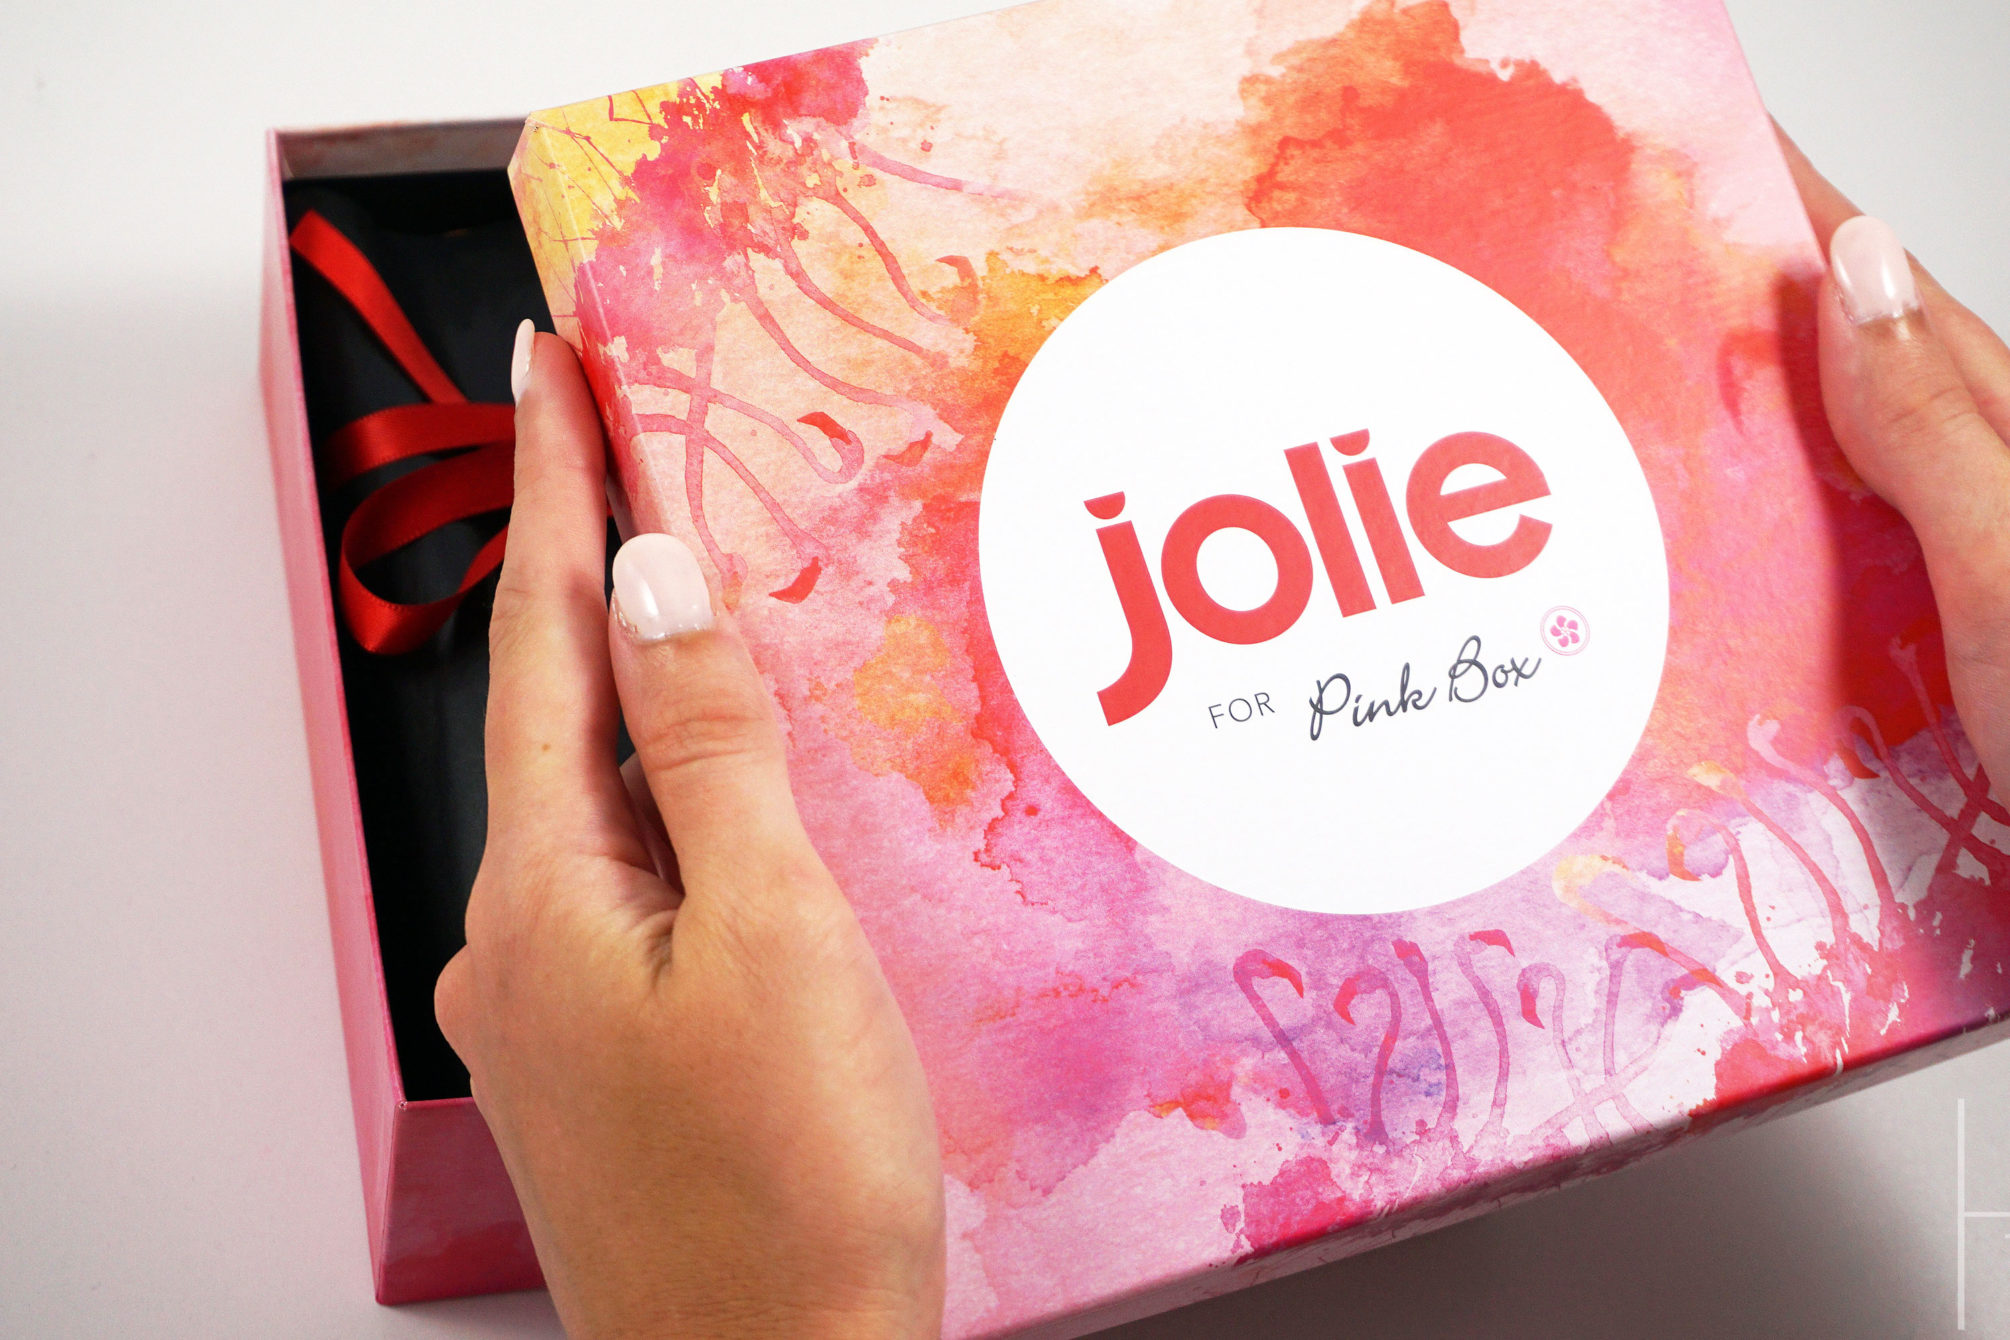 Jolie for Pink Box Juli 2016